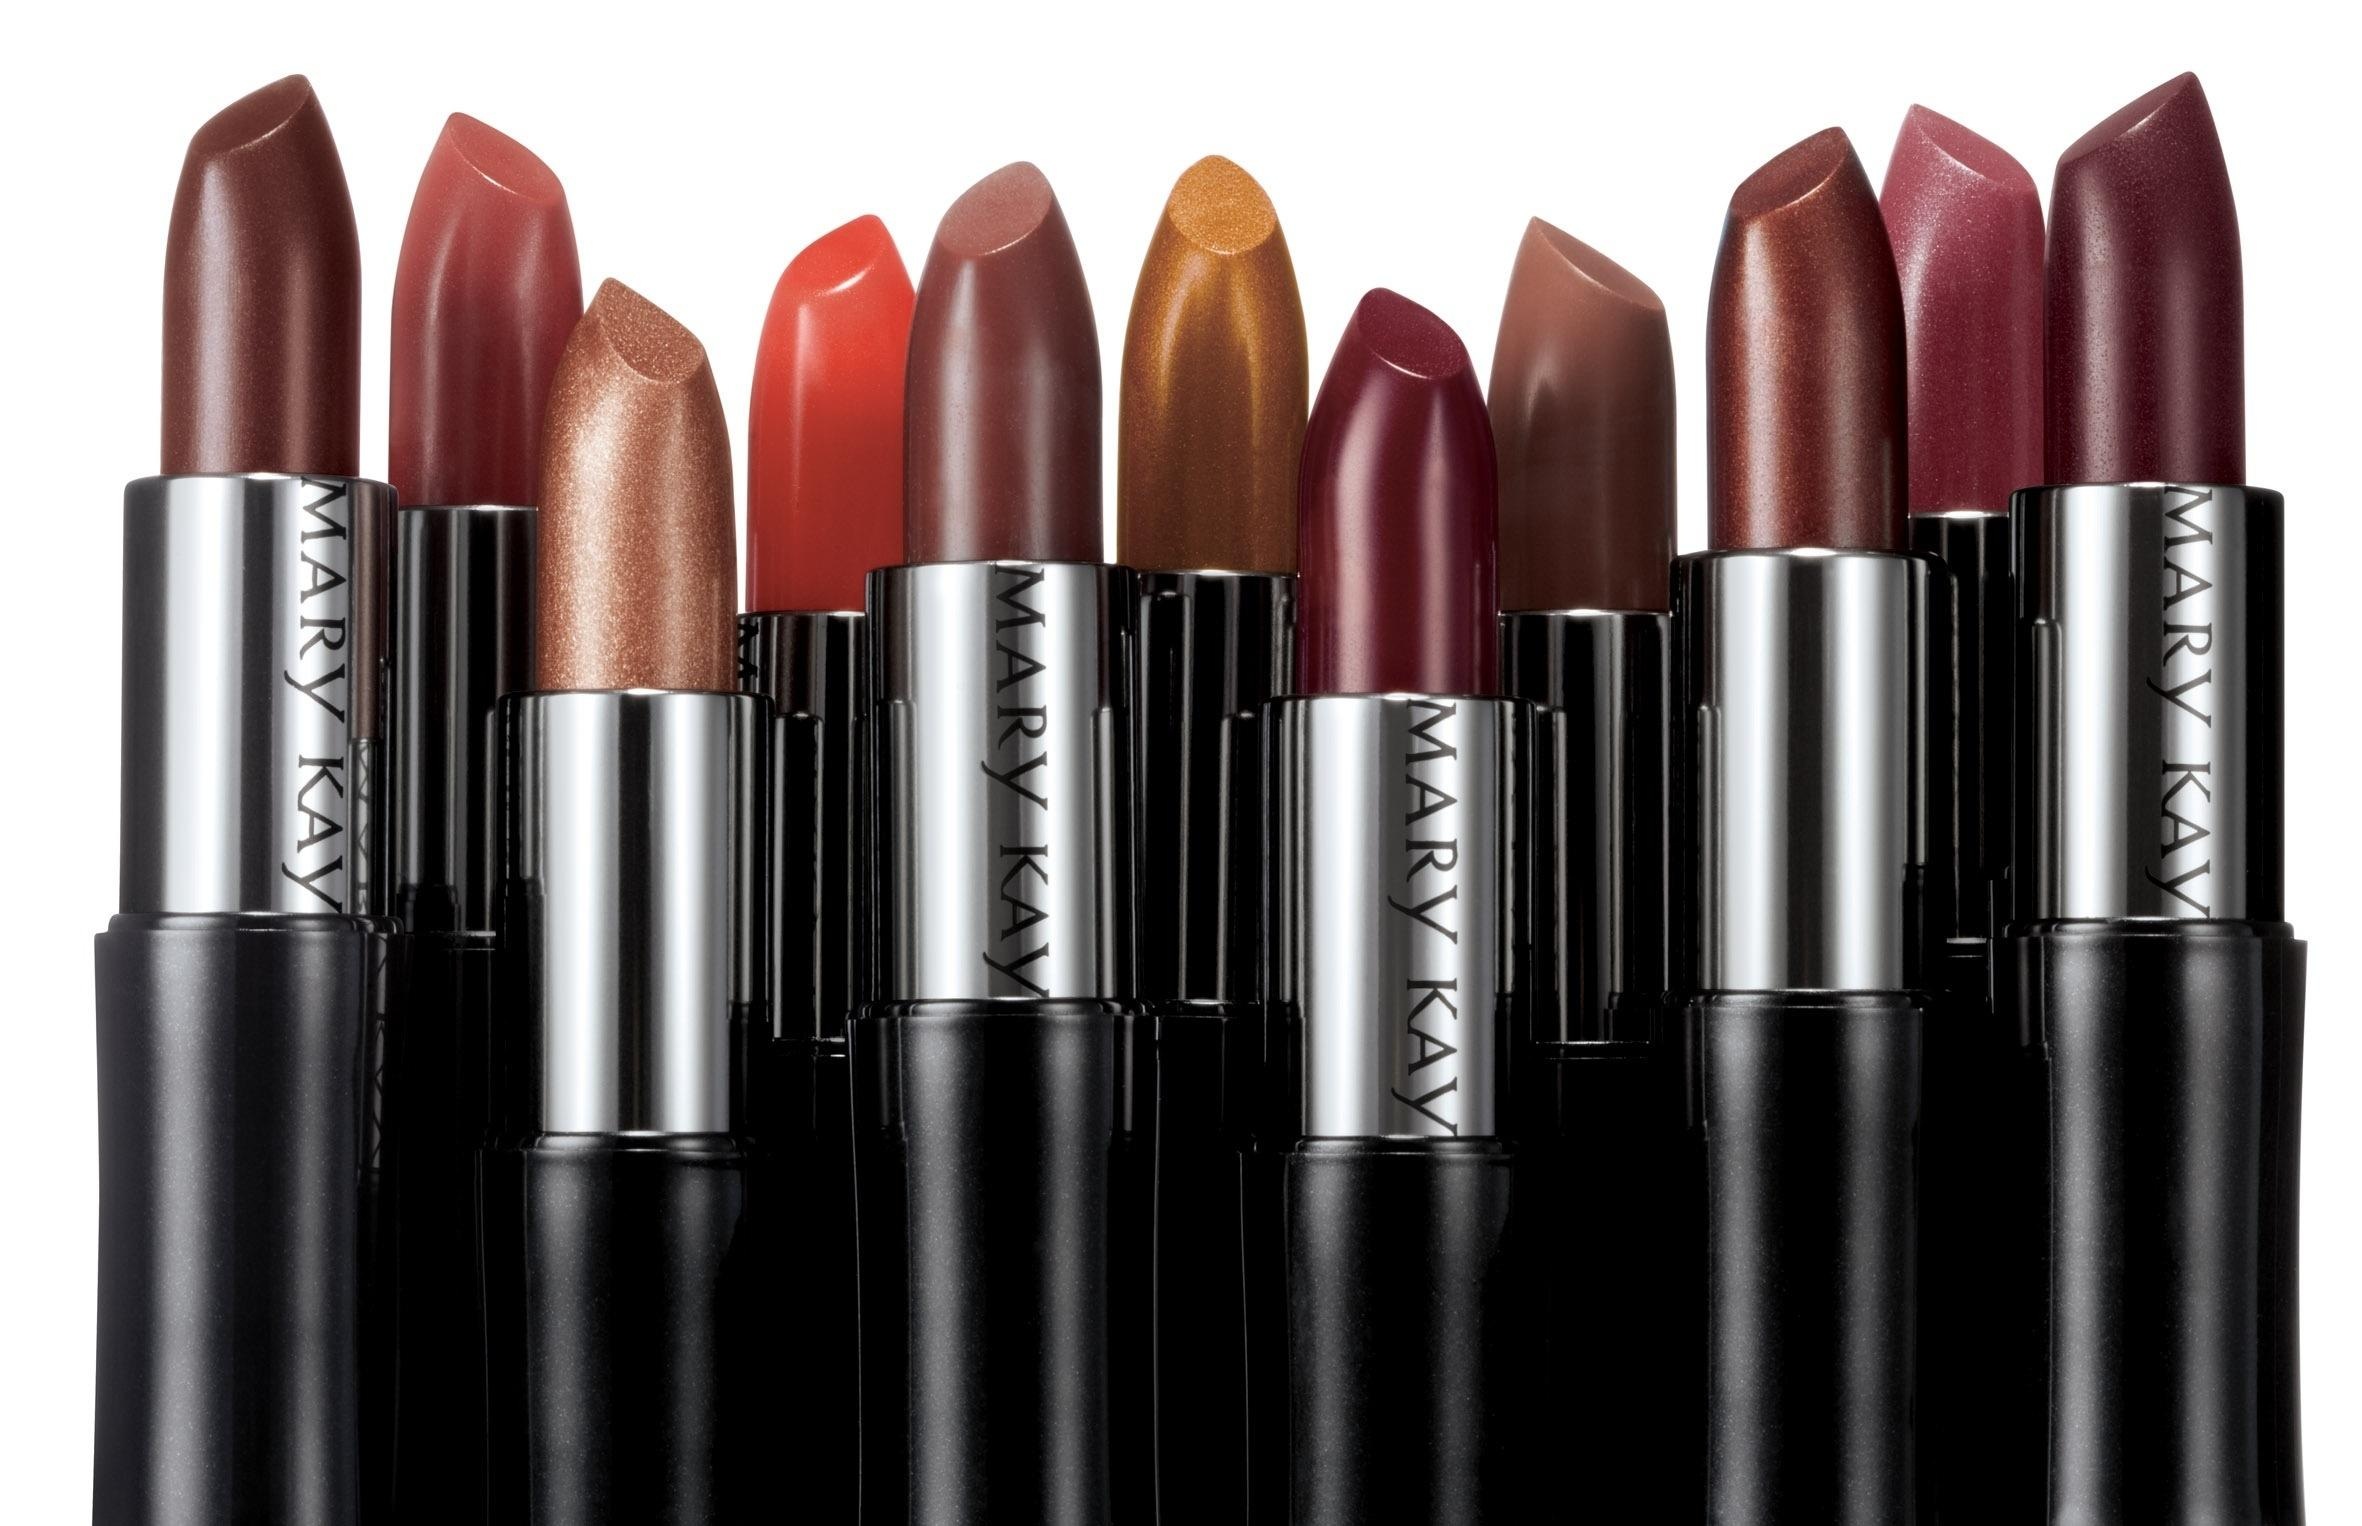 Free mary kay lipstick text offer